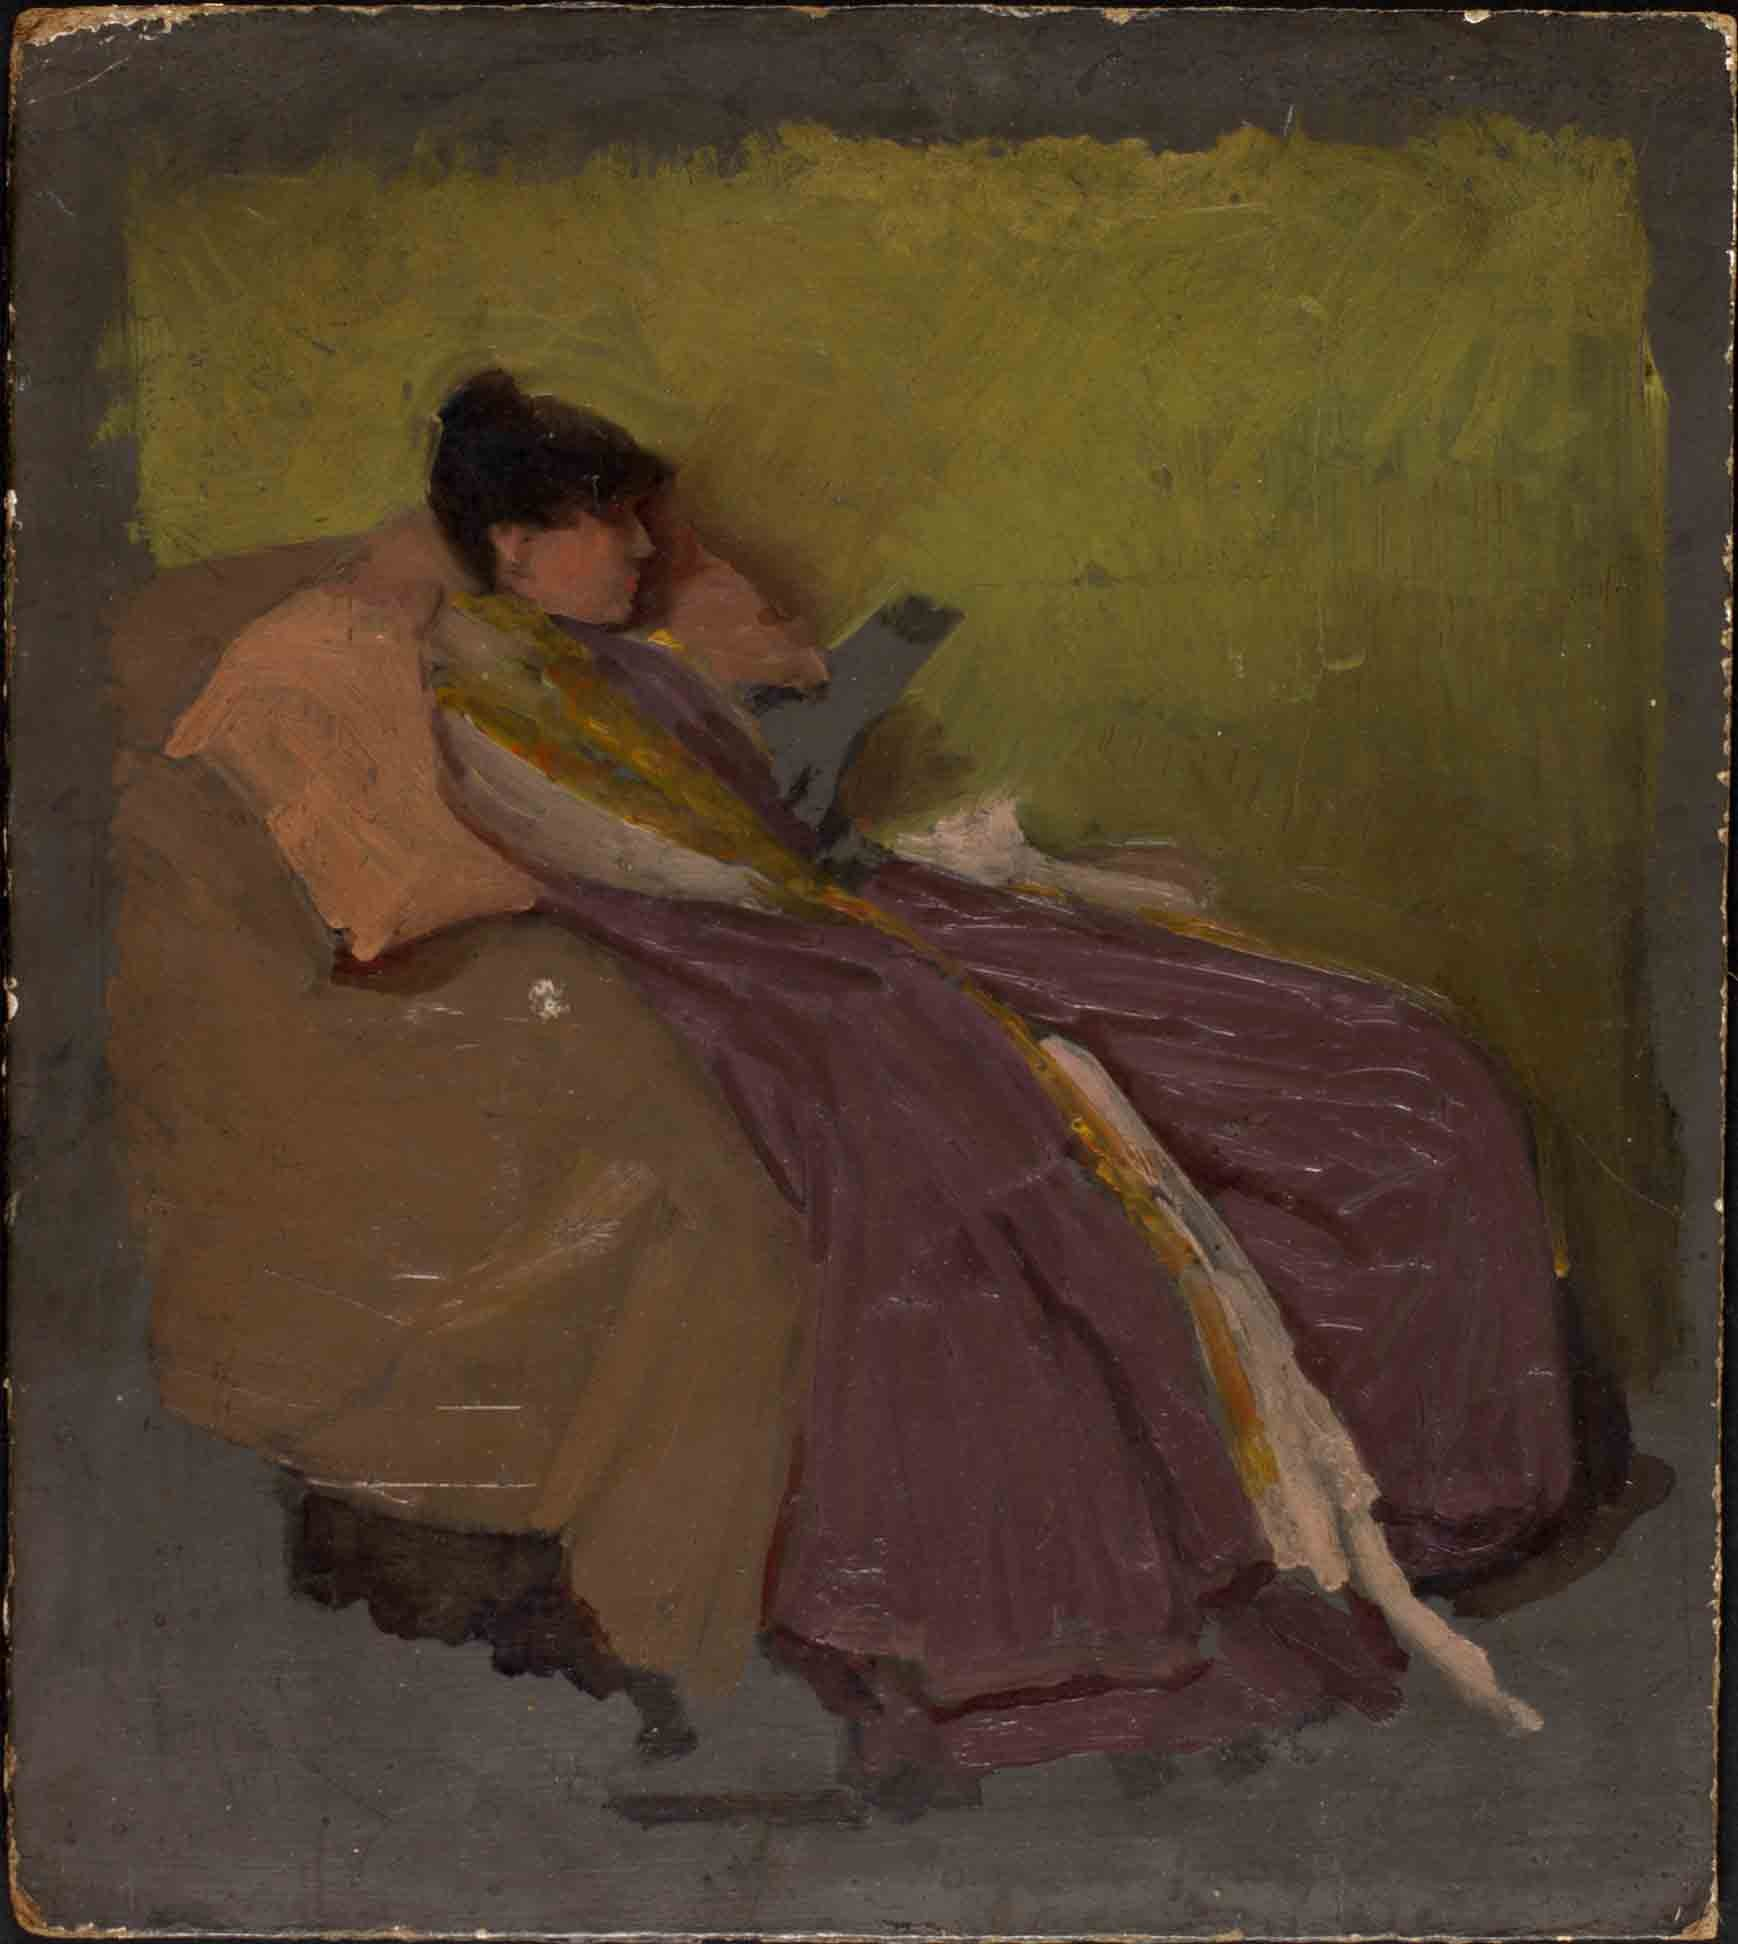 file:woman in an armchair reading a book - wikimedia commons